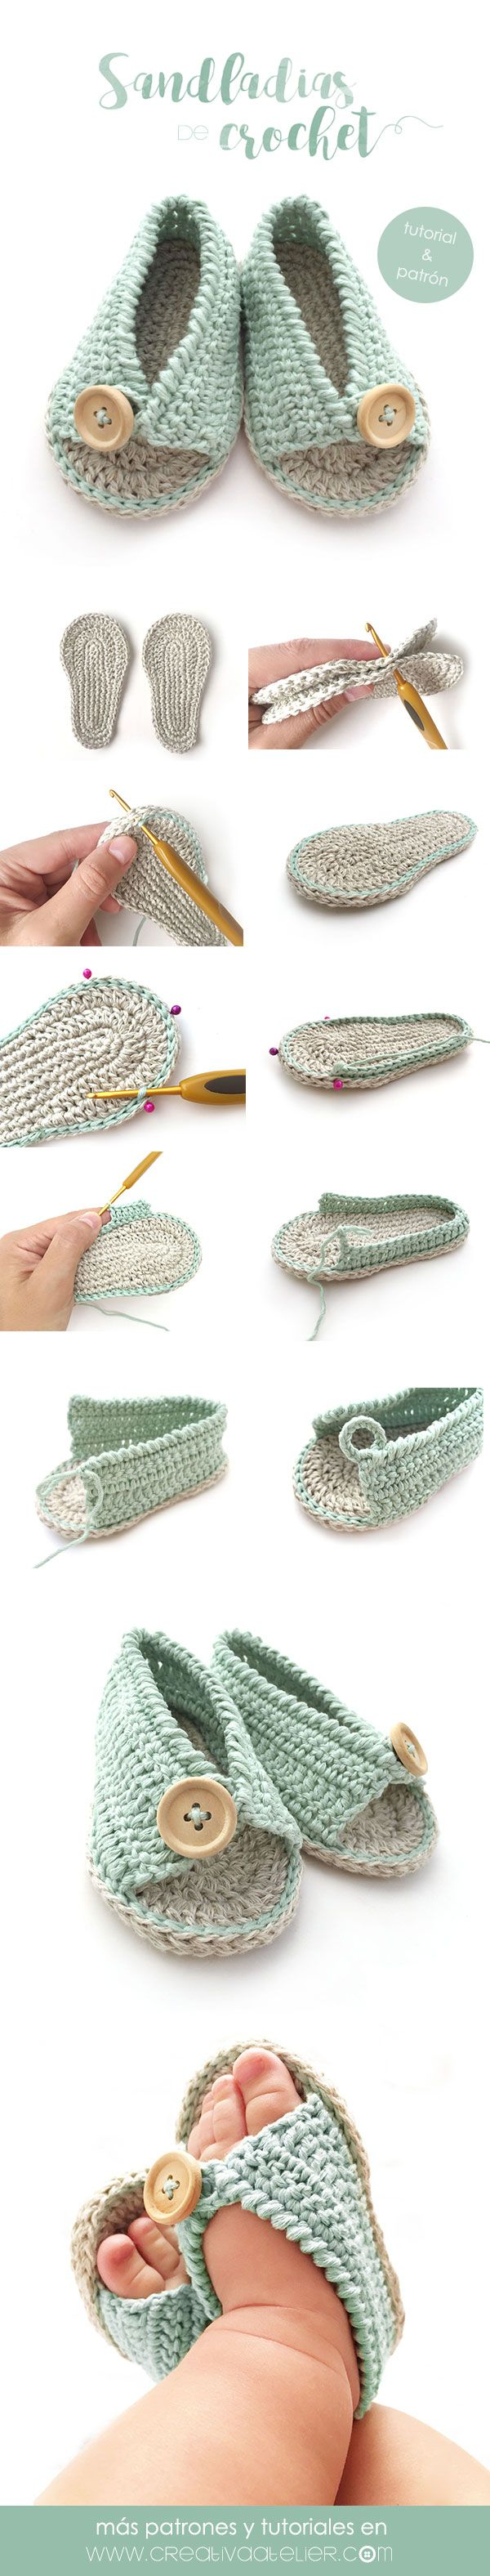 Free Pattern (needs translation) and phototutorial